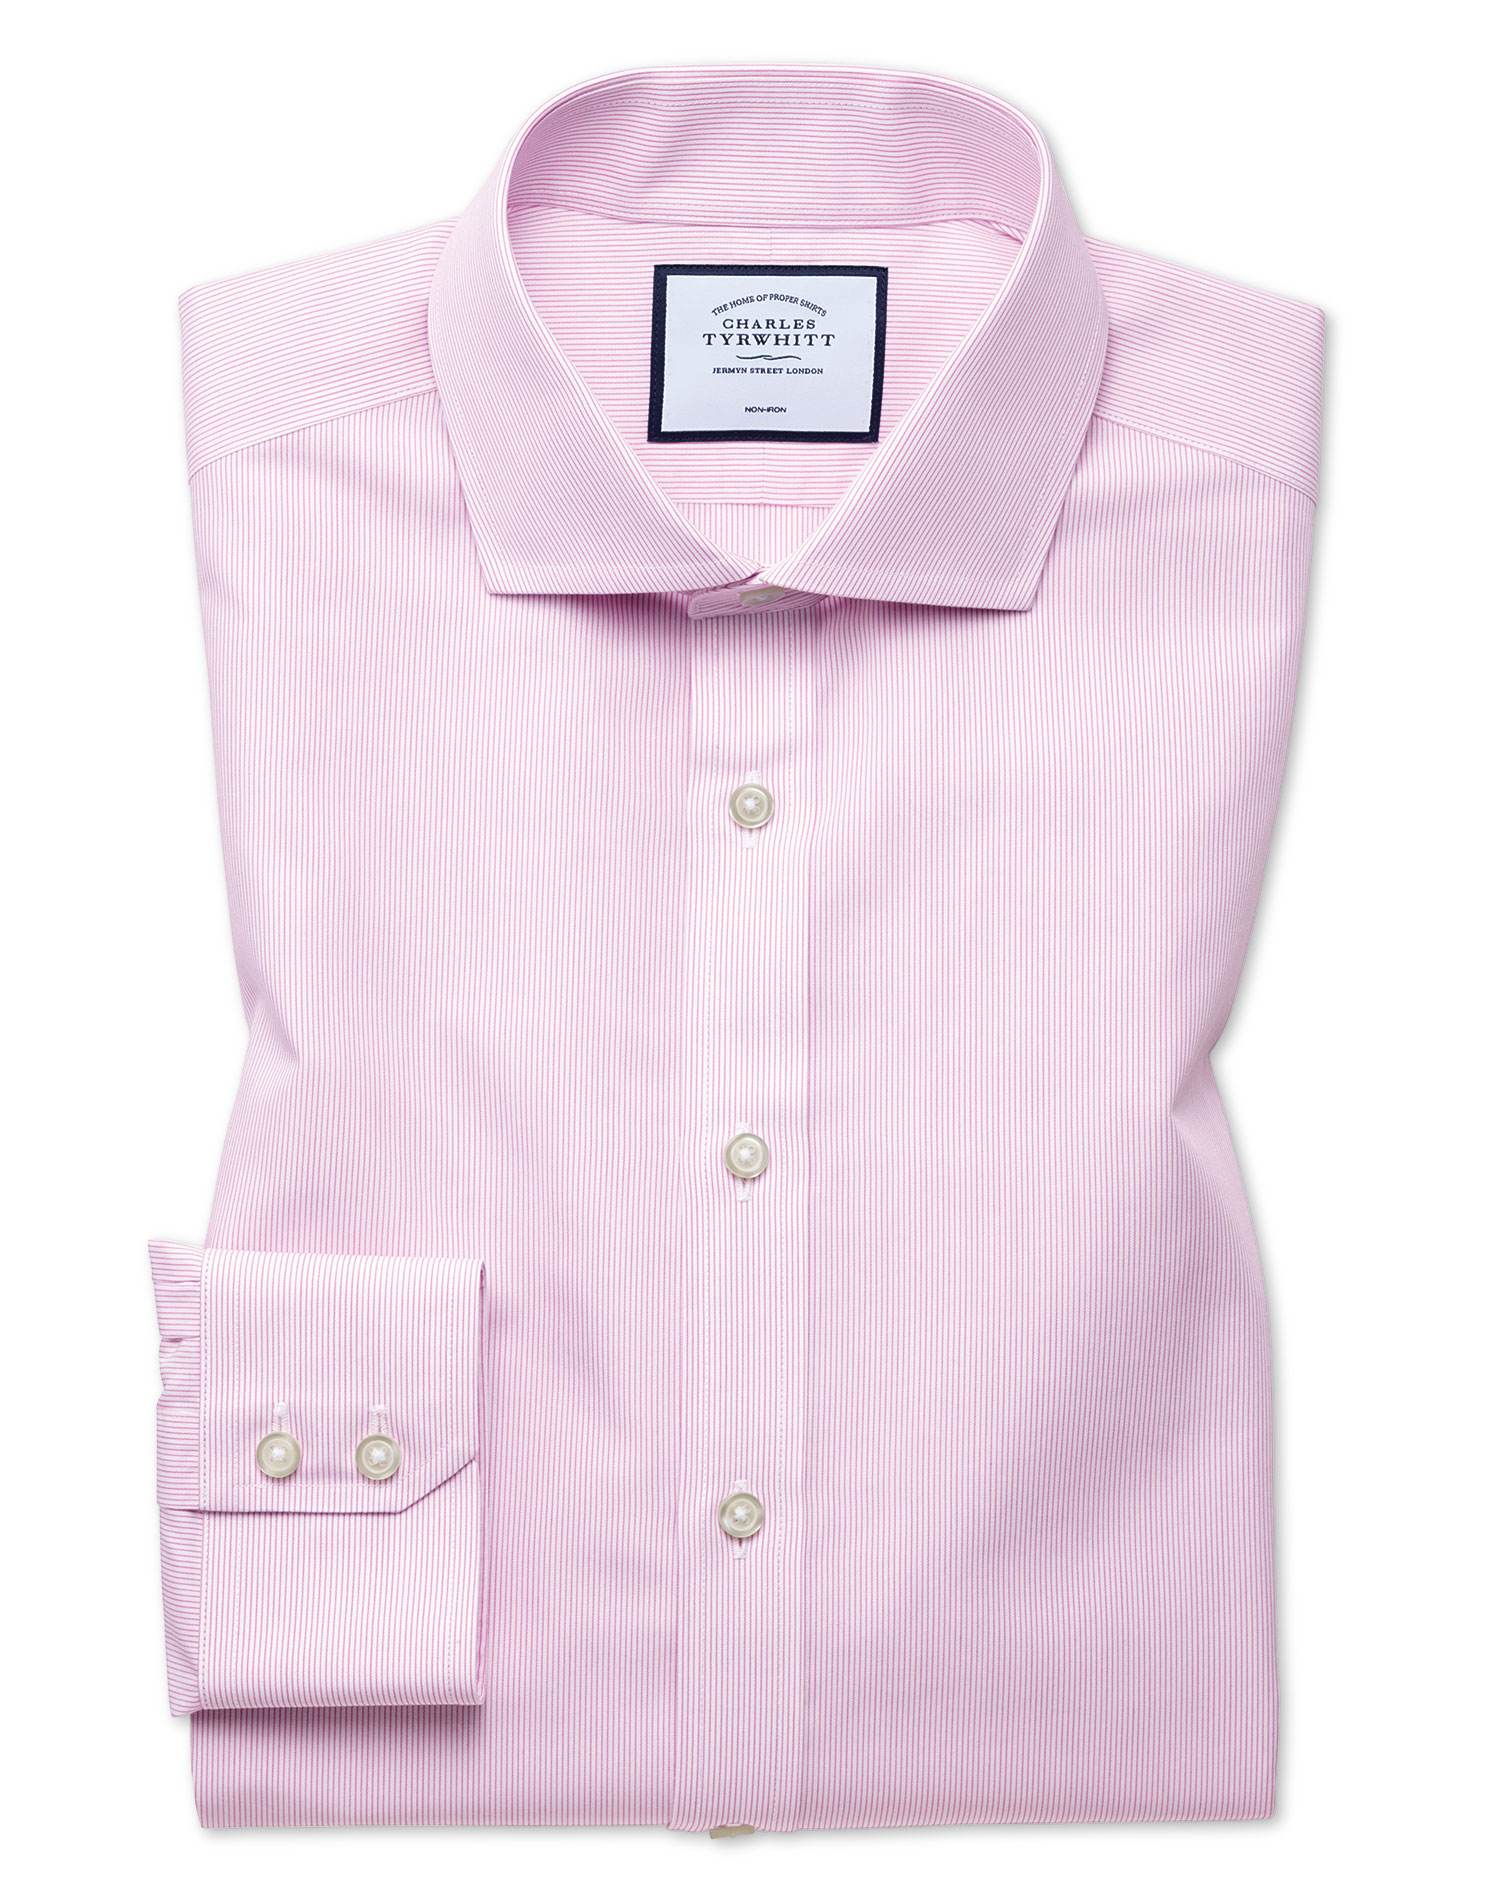 Extra Slim Fit Non-Iron Natural Cool Poplin Pink Cotton Formal Shirt Single Cuff Size 16.5/35 by Cha